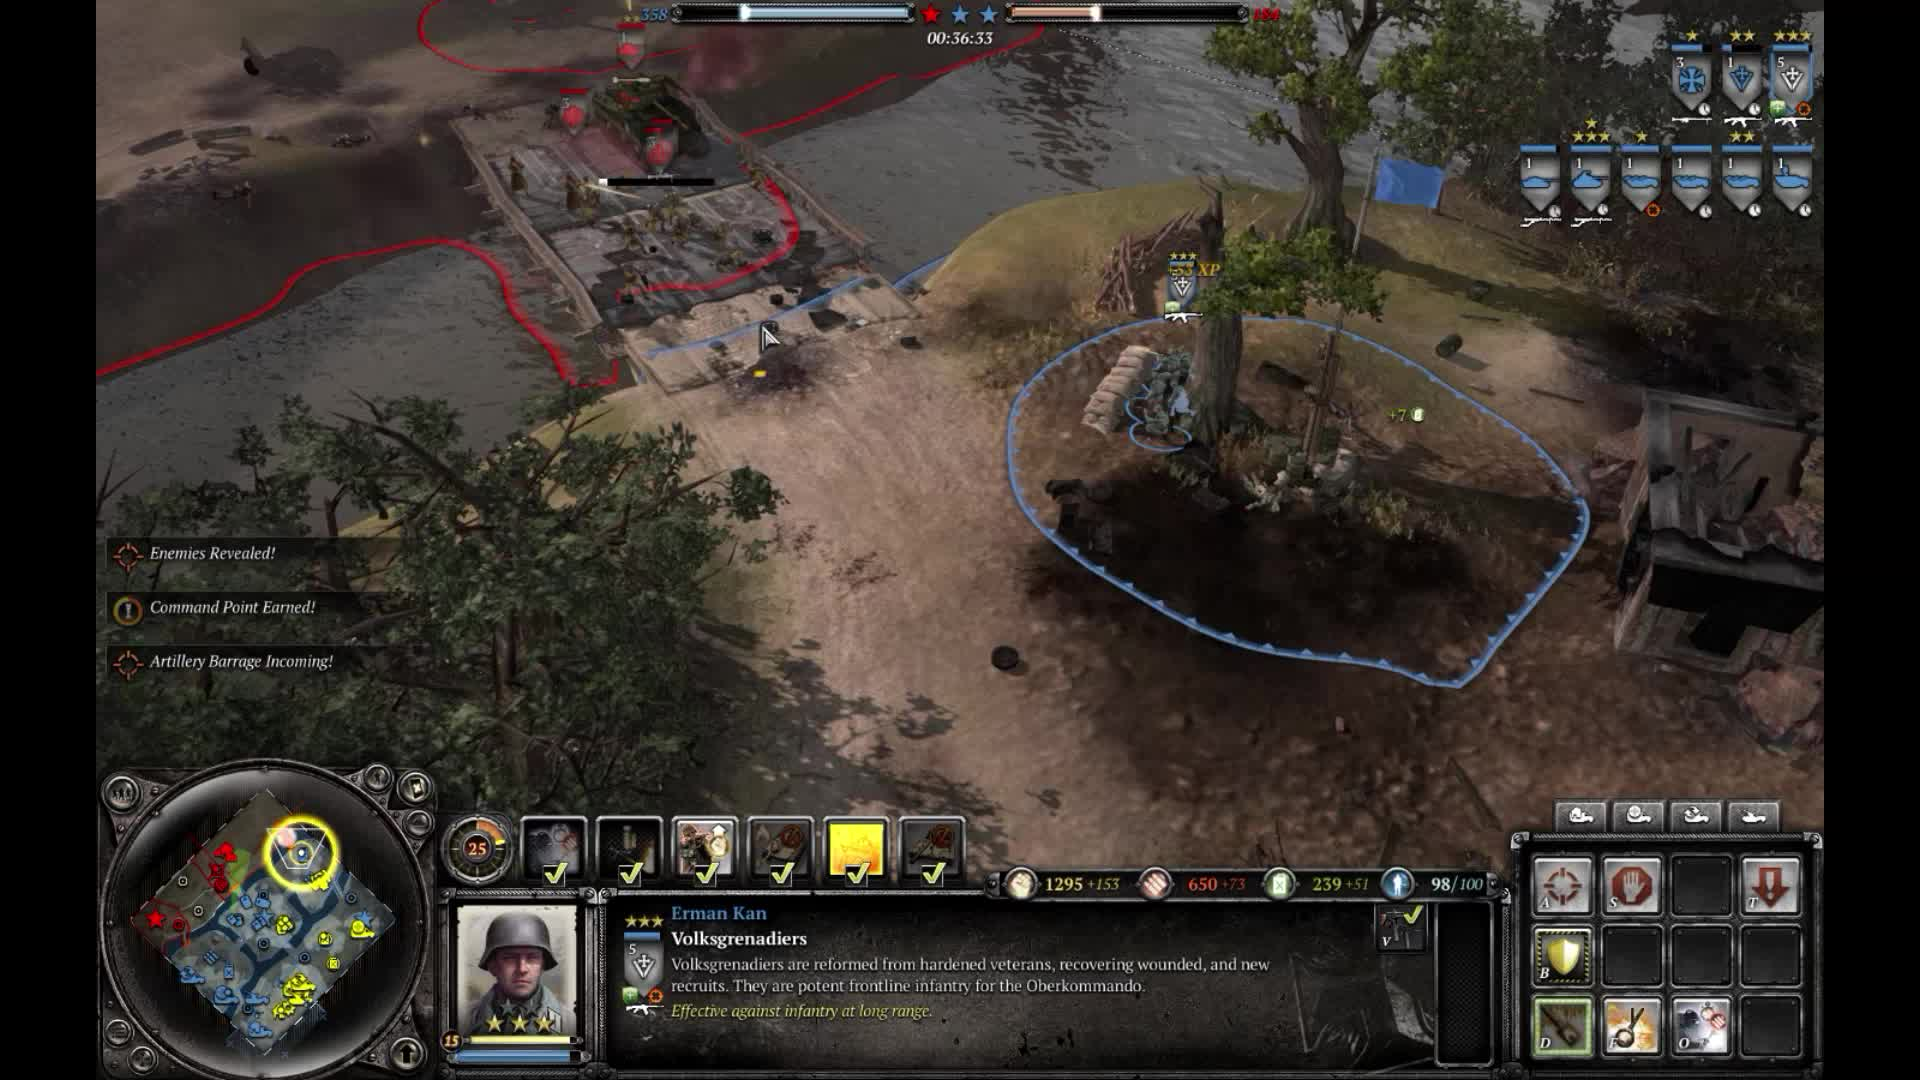 companyofheroes, explosions, Satisfaction,achieved. GIFs